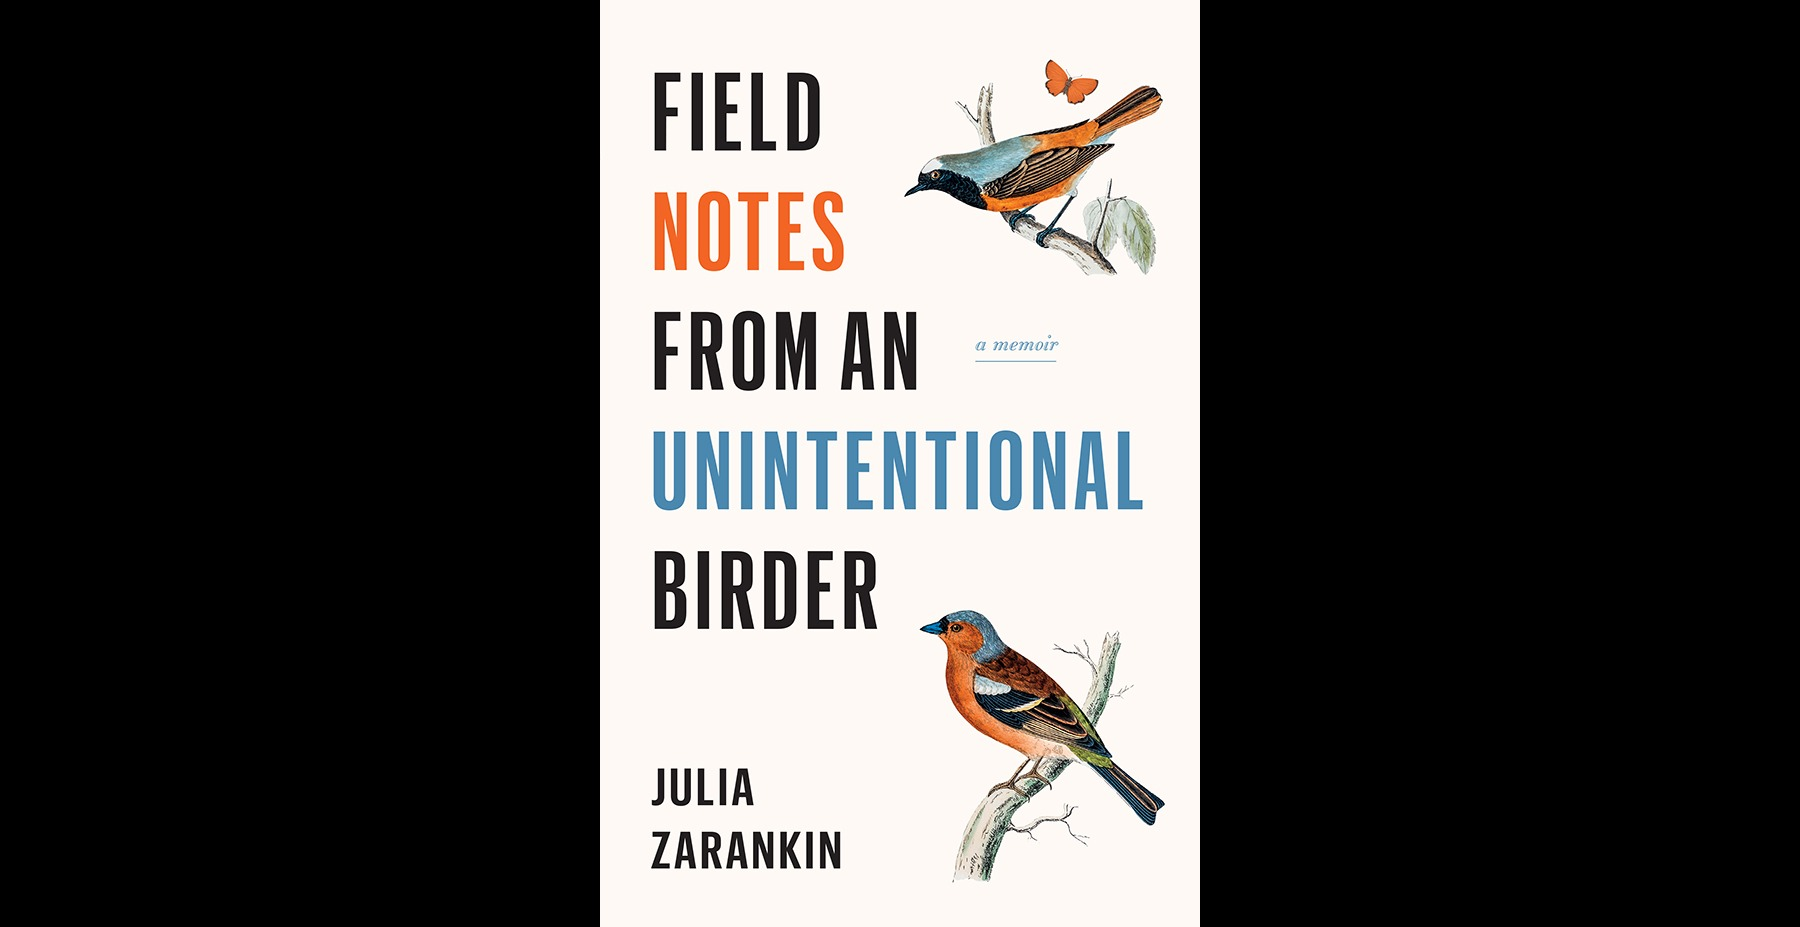 Join us for a book launch – Field Notes from an Unintentional Birder